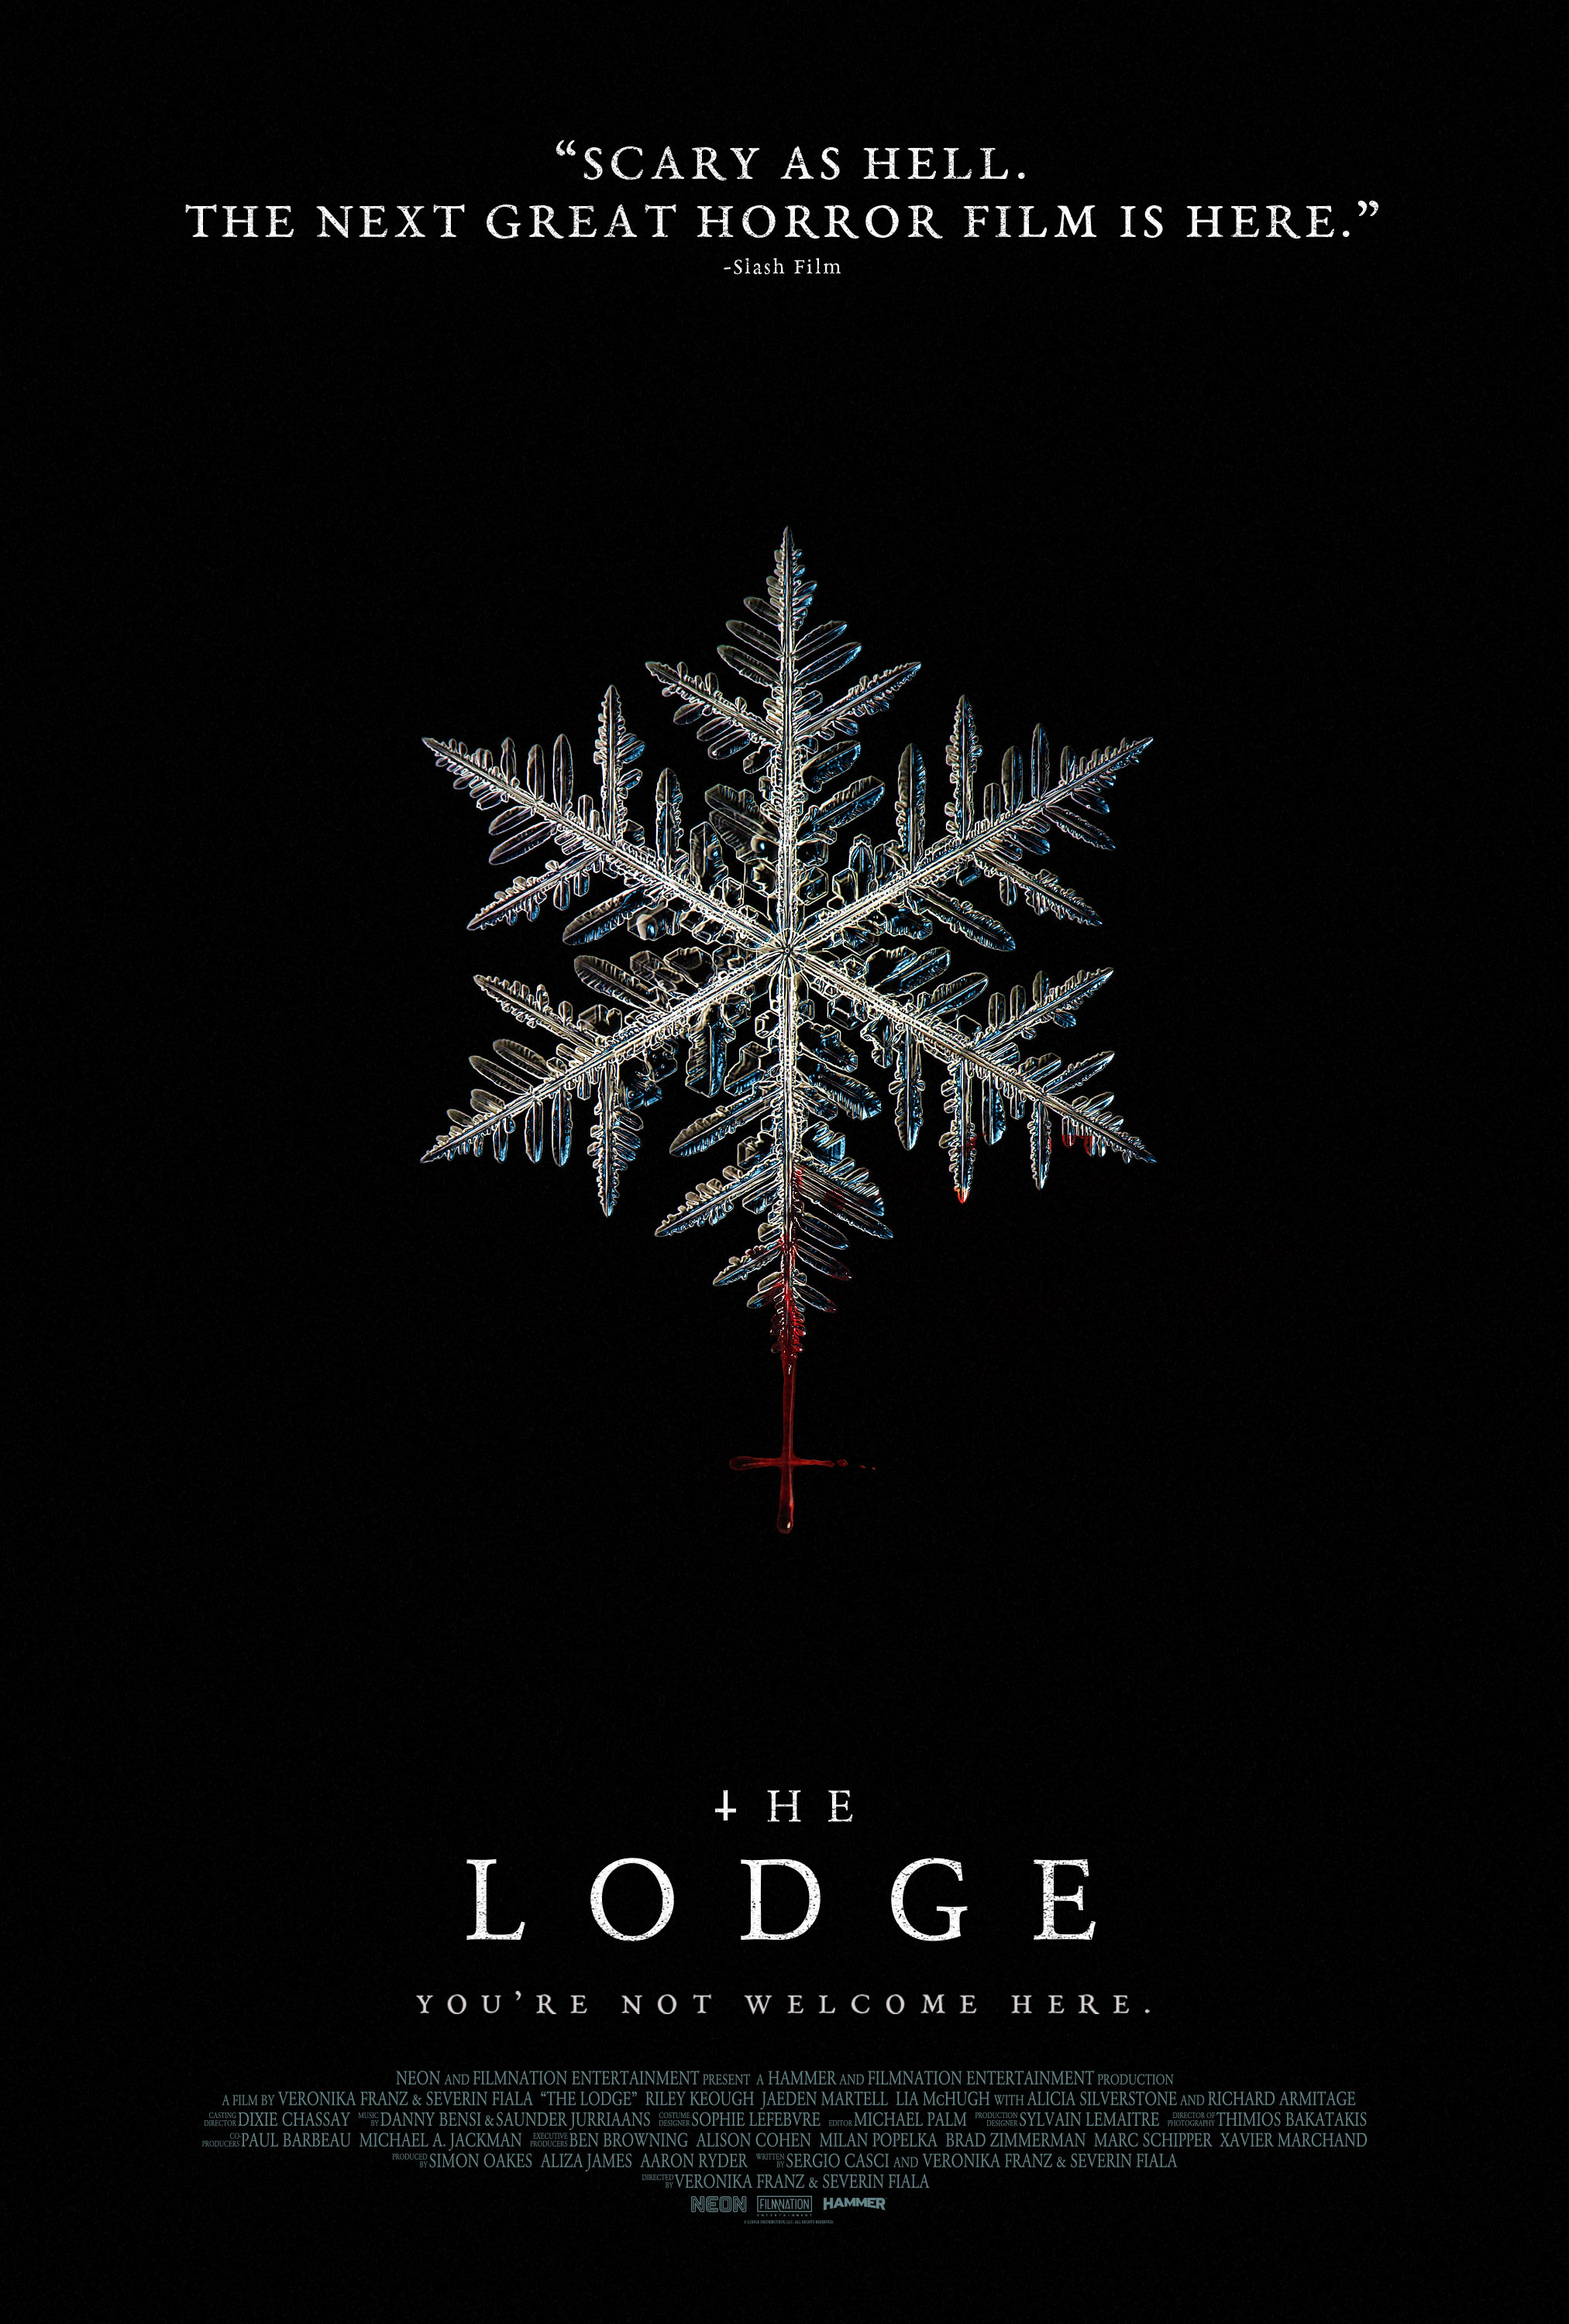 TheLodge_TeaserPoster.jpg